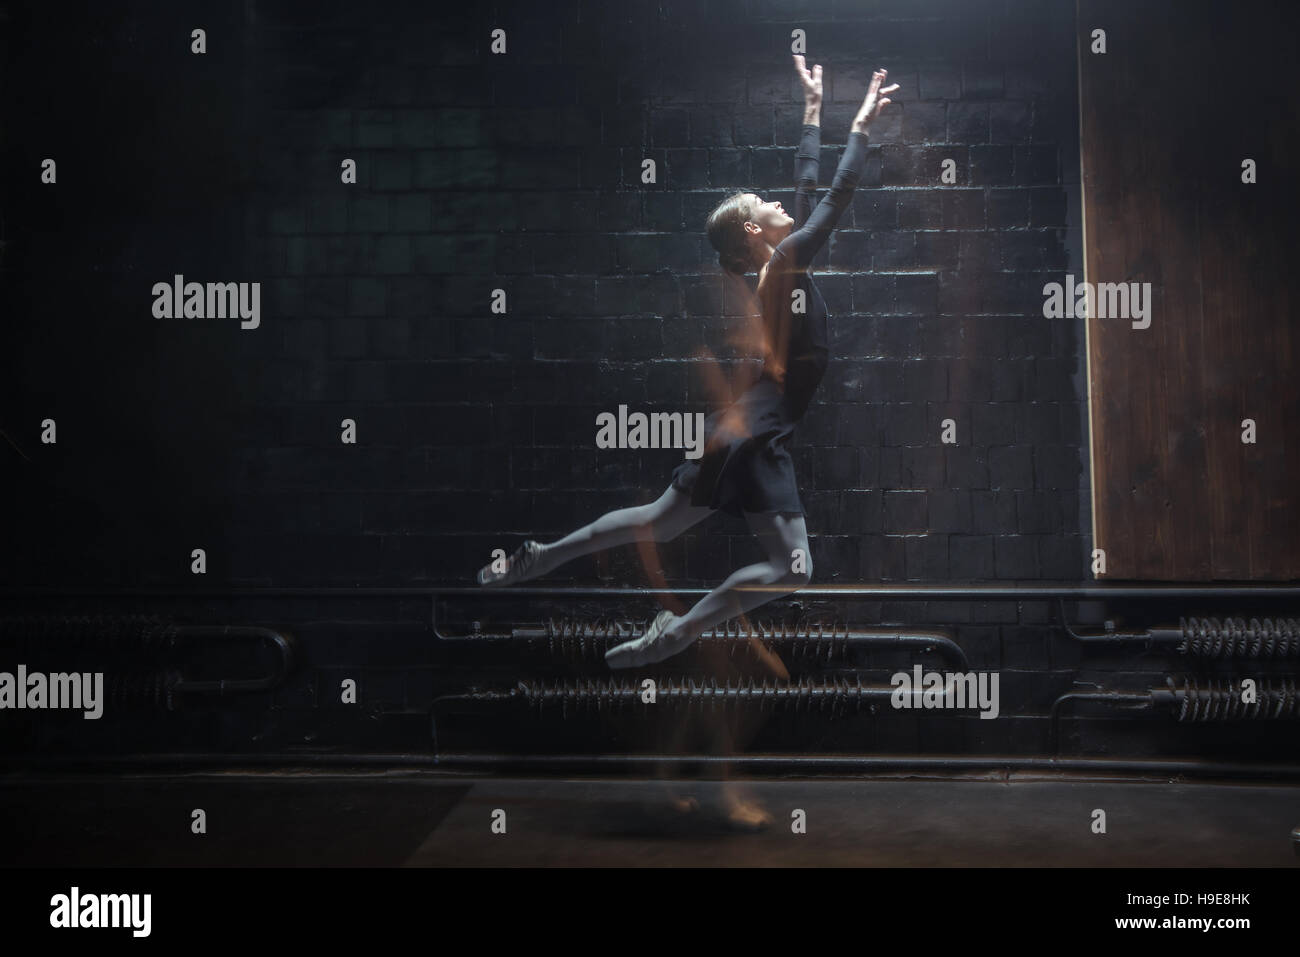 Inspired ballet dancer jumping on the dark background - Stock Image